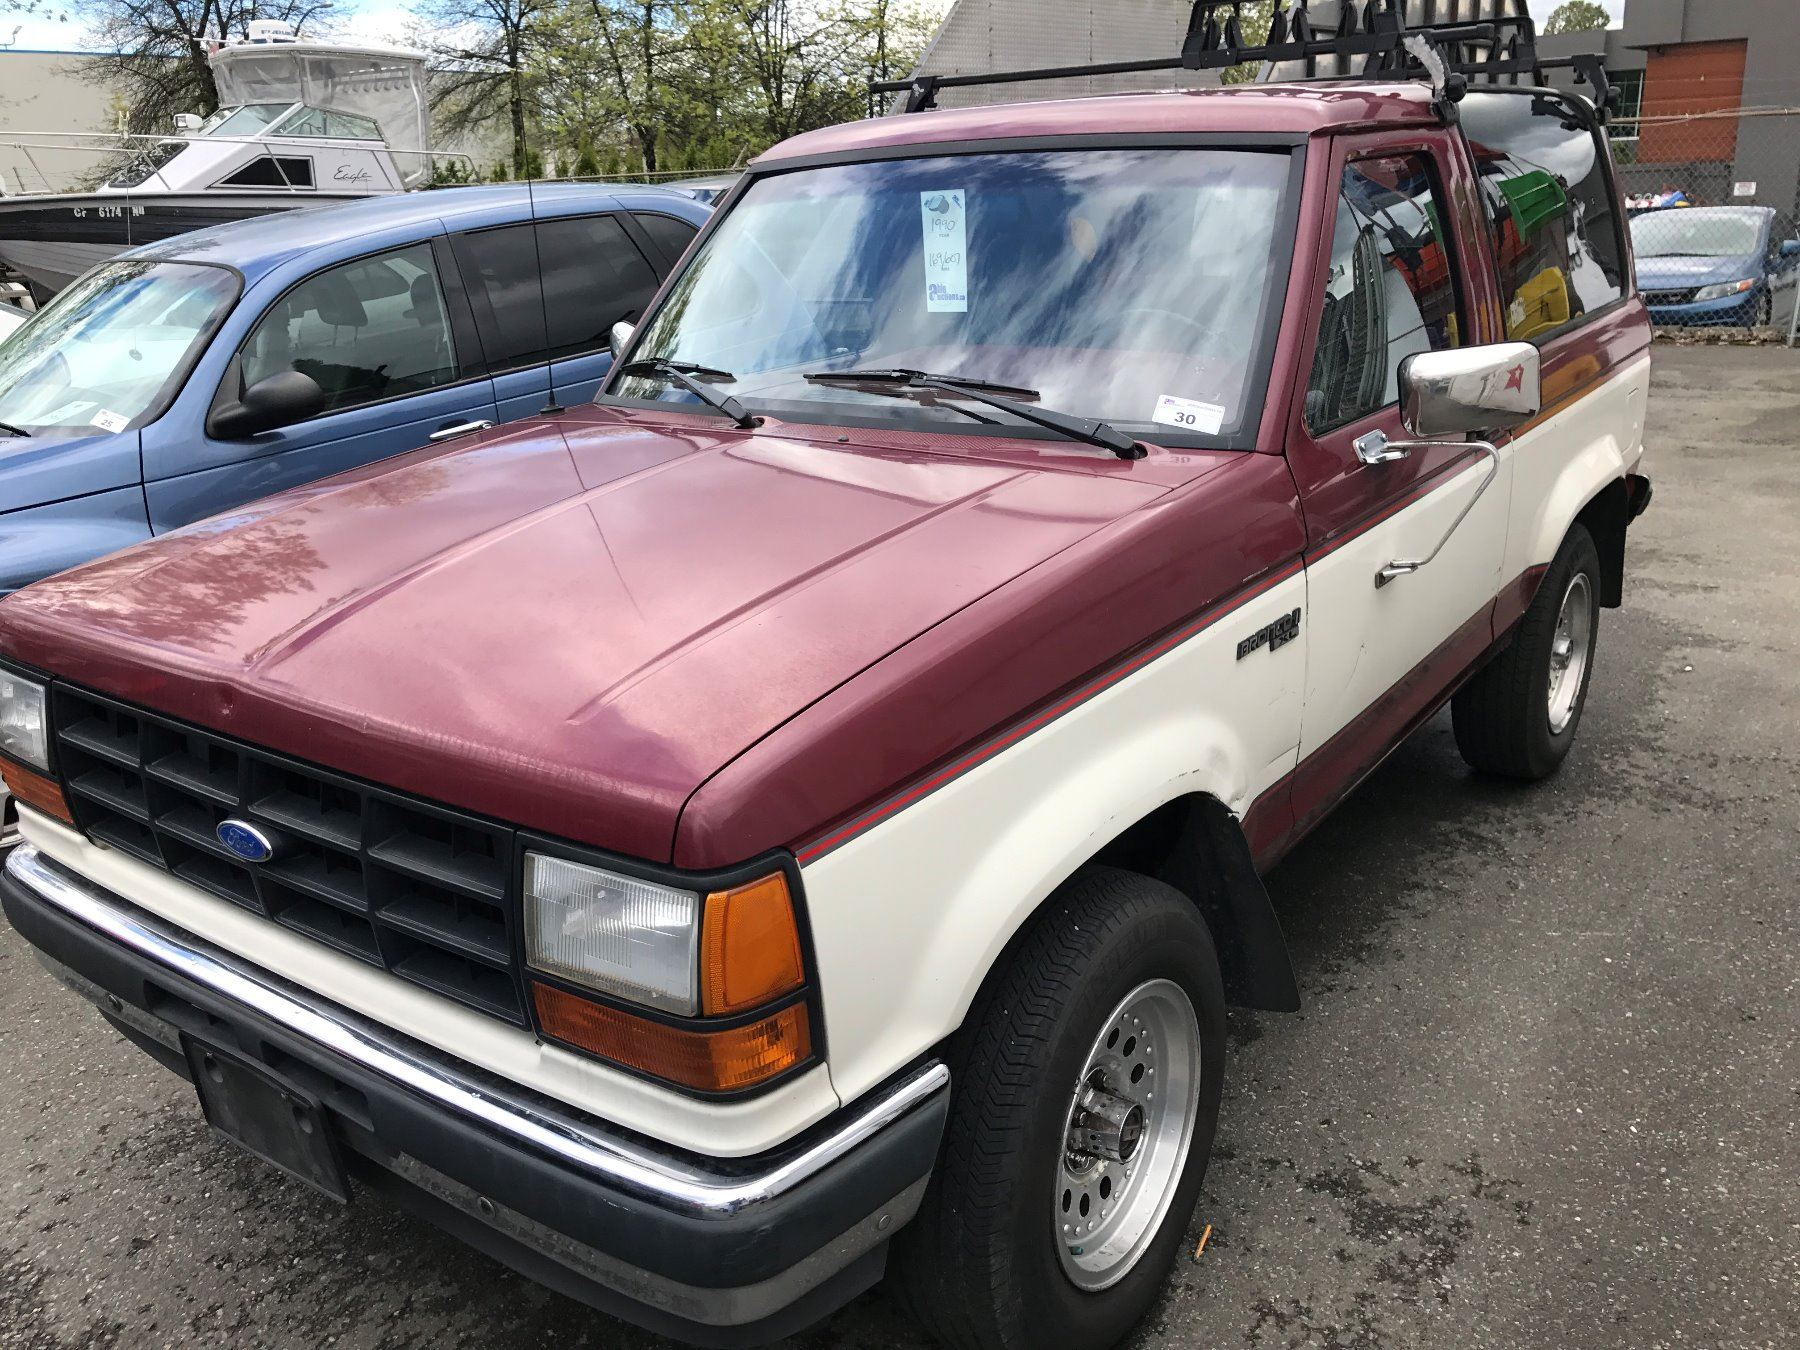 1990 ford bronco ii xl 2 door suv red white vin 1fmcu14txlua93193. Black Bedroom Furniture Sets. Home Design Ideas